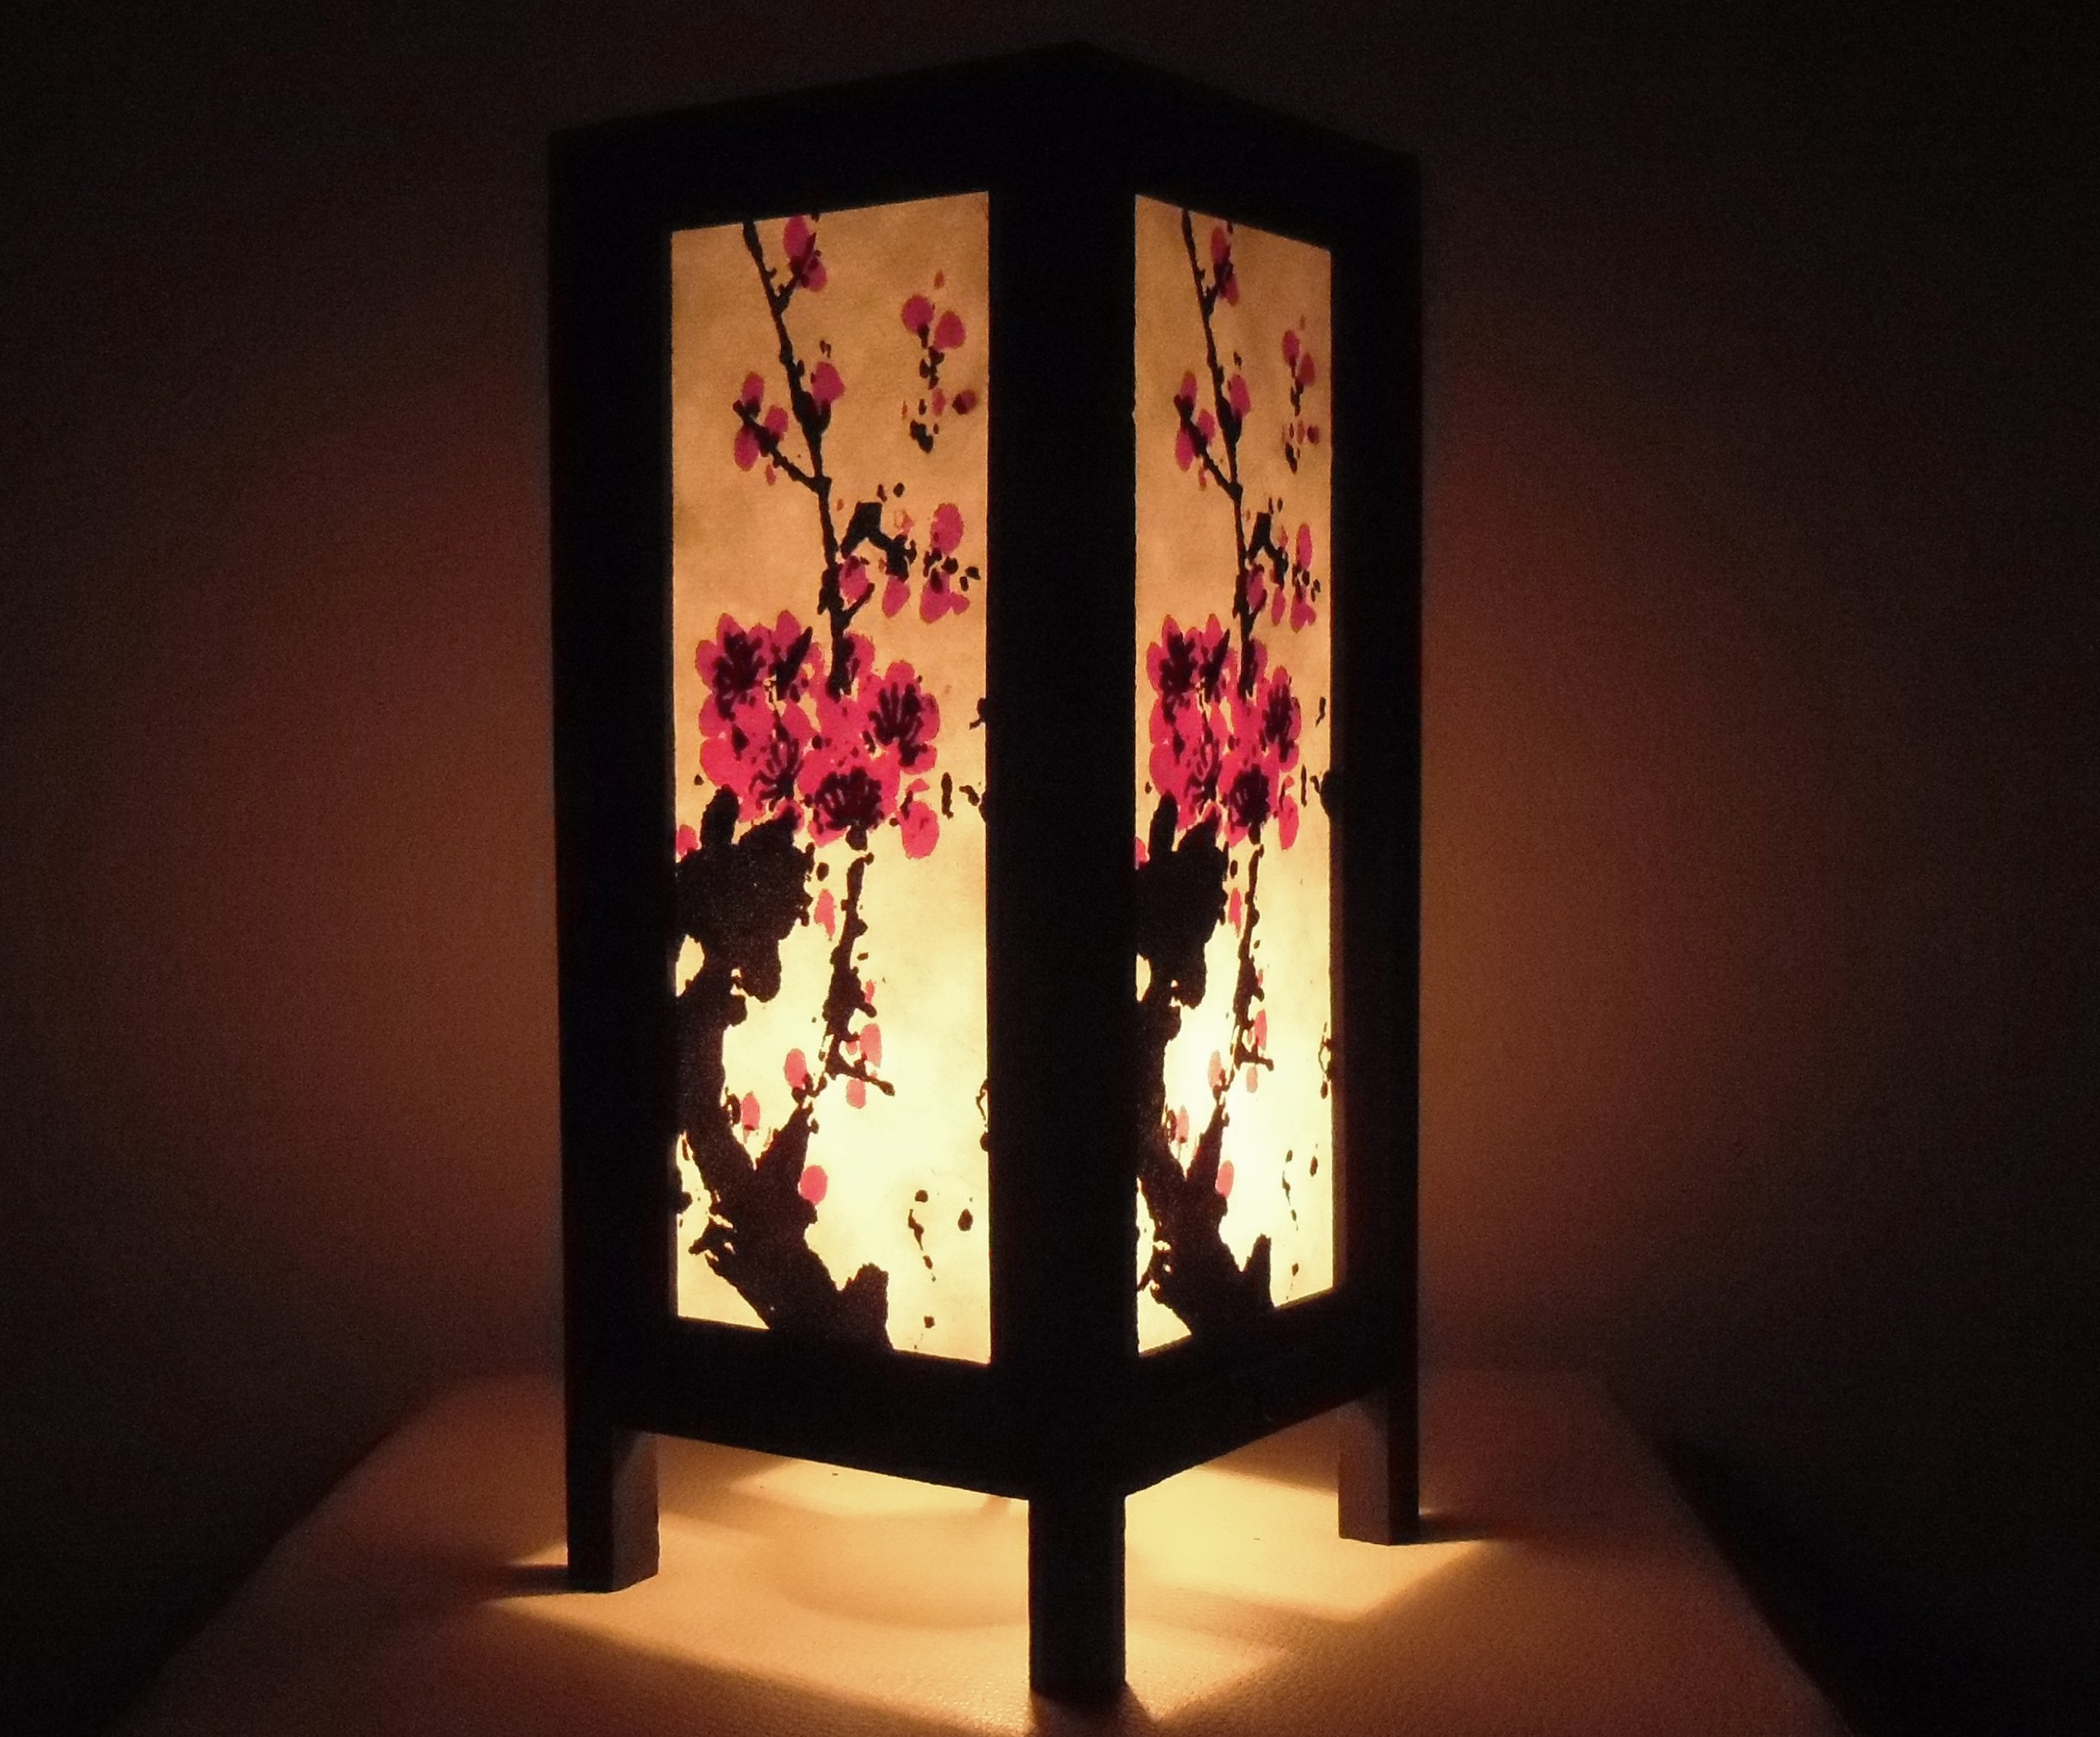 Thai Vintage Handmade Asian Oriental Art Mei flowers Style accessories Bedside Table Light or Floor Wood Paper Lanna Lamp Shades Home Bedroom Decor / Garden Decorative Modern Design from Thailand by Red berry Thailand Lanna Lamp